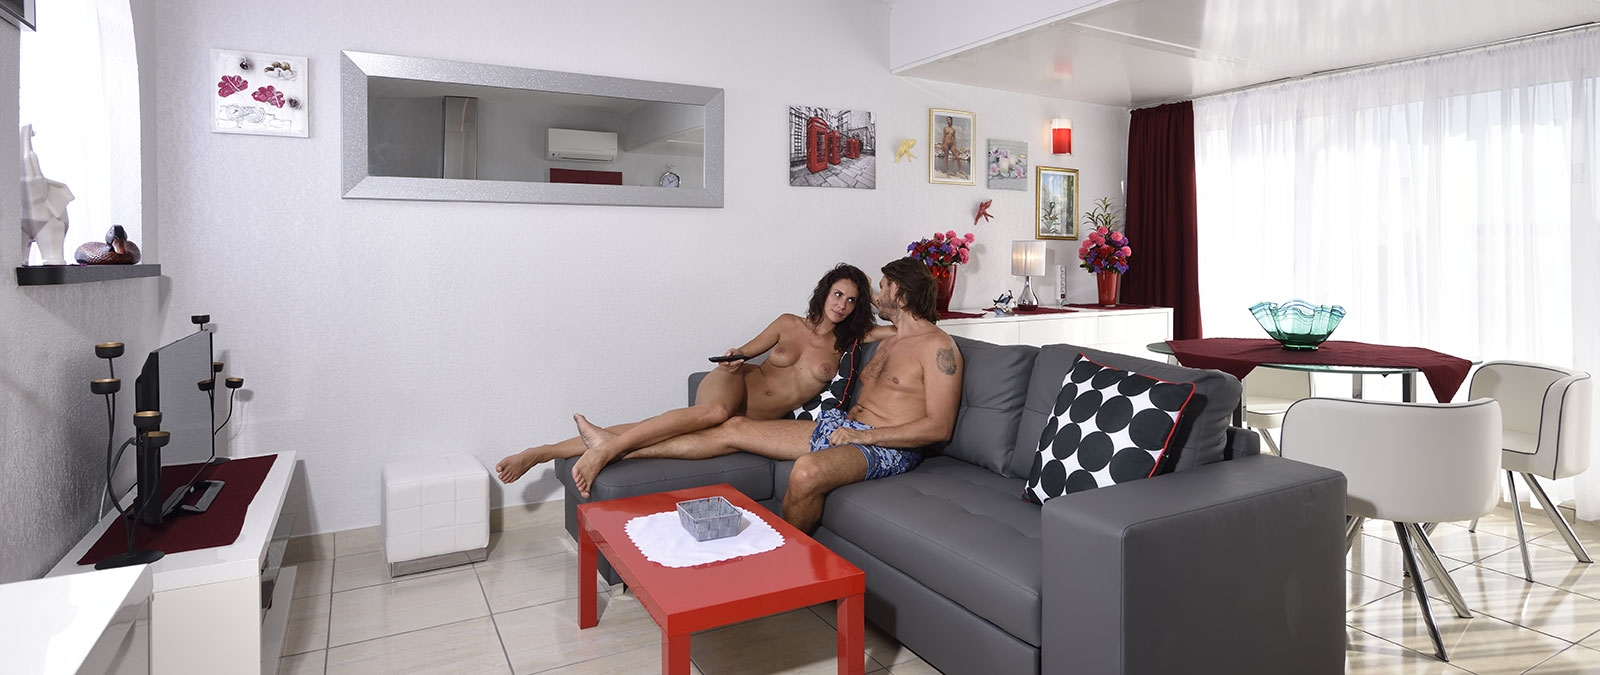 Vermietung Swinger-Apartment Sawadee II